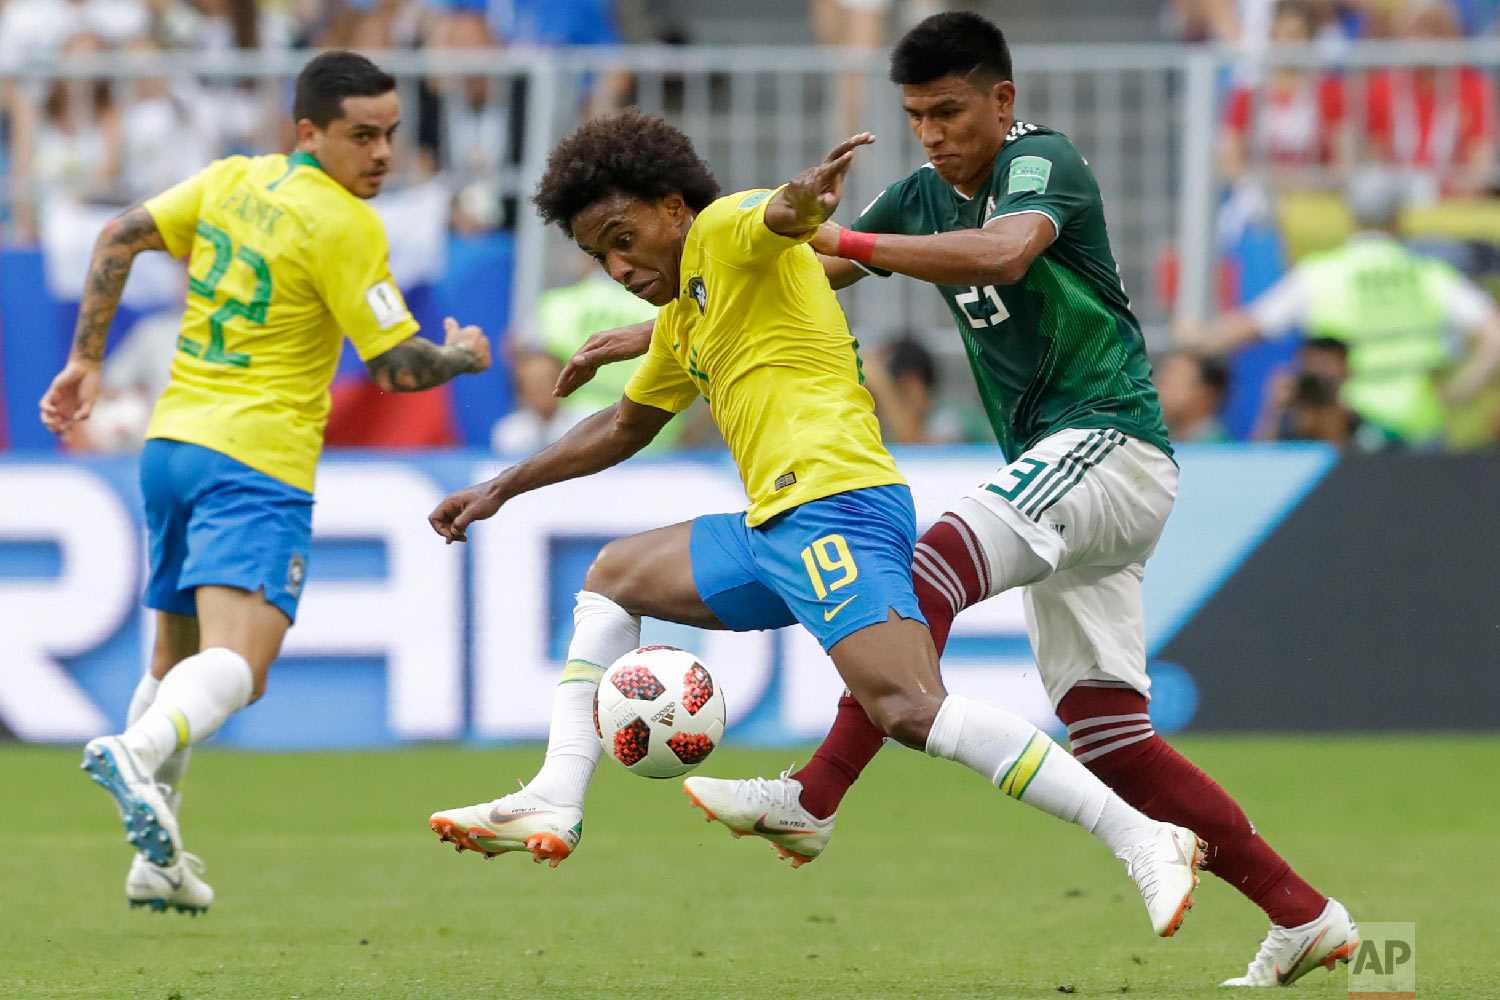 Mexico's Jesus Gallardo, right, vies for the ball with Brazil's Willian, center, during the round of 16 match between Brazil and Mexico at the 2018 soccer World Cup in the Samara Arena, in Samara, Russia, Monday, July 2, 2018. (AP Photo/Andre Penner)